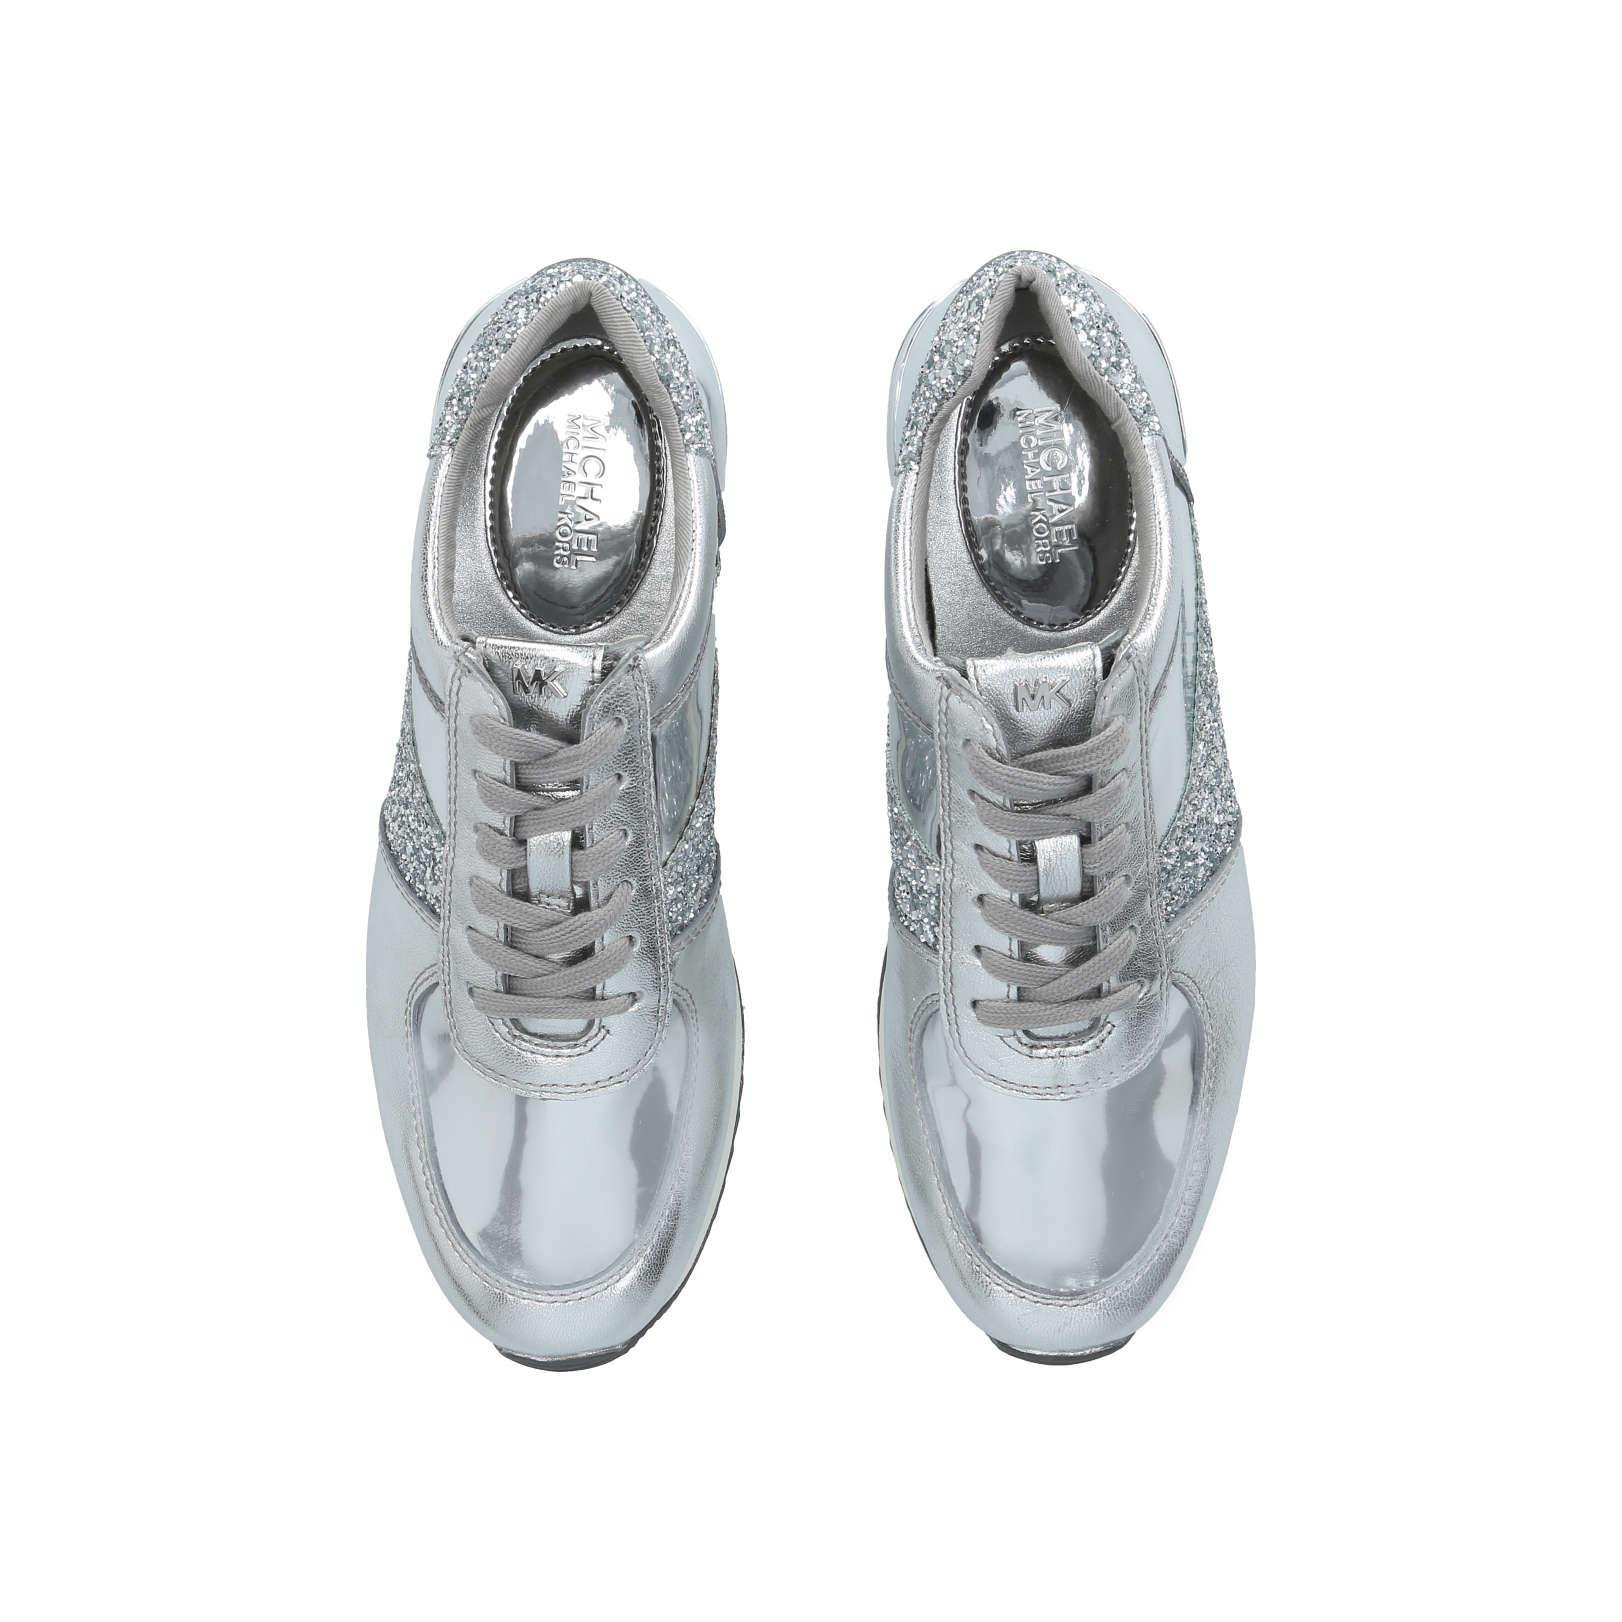 MICHAEL Michael Kors Leather Allie Wrap Trainer in Silver (Metallic)